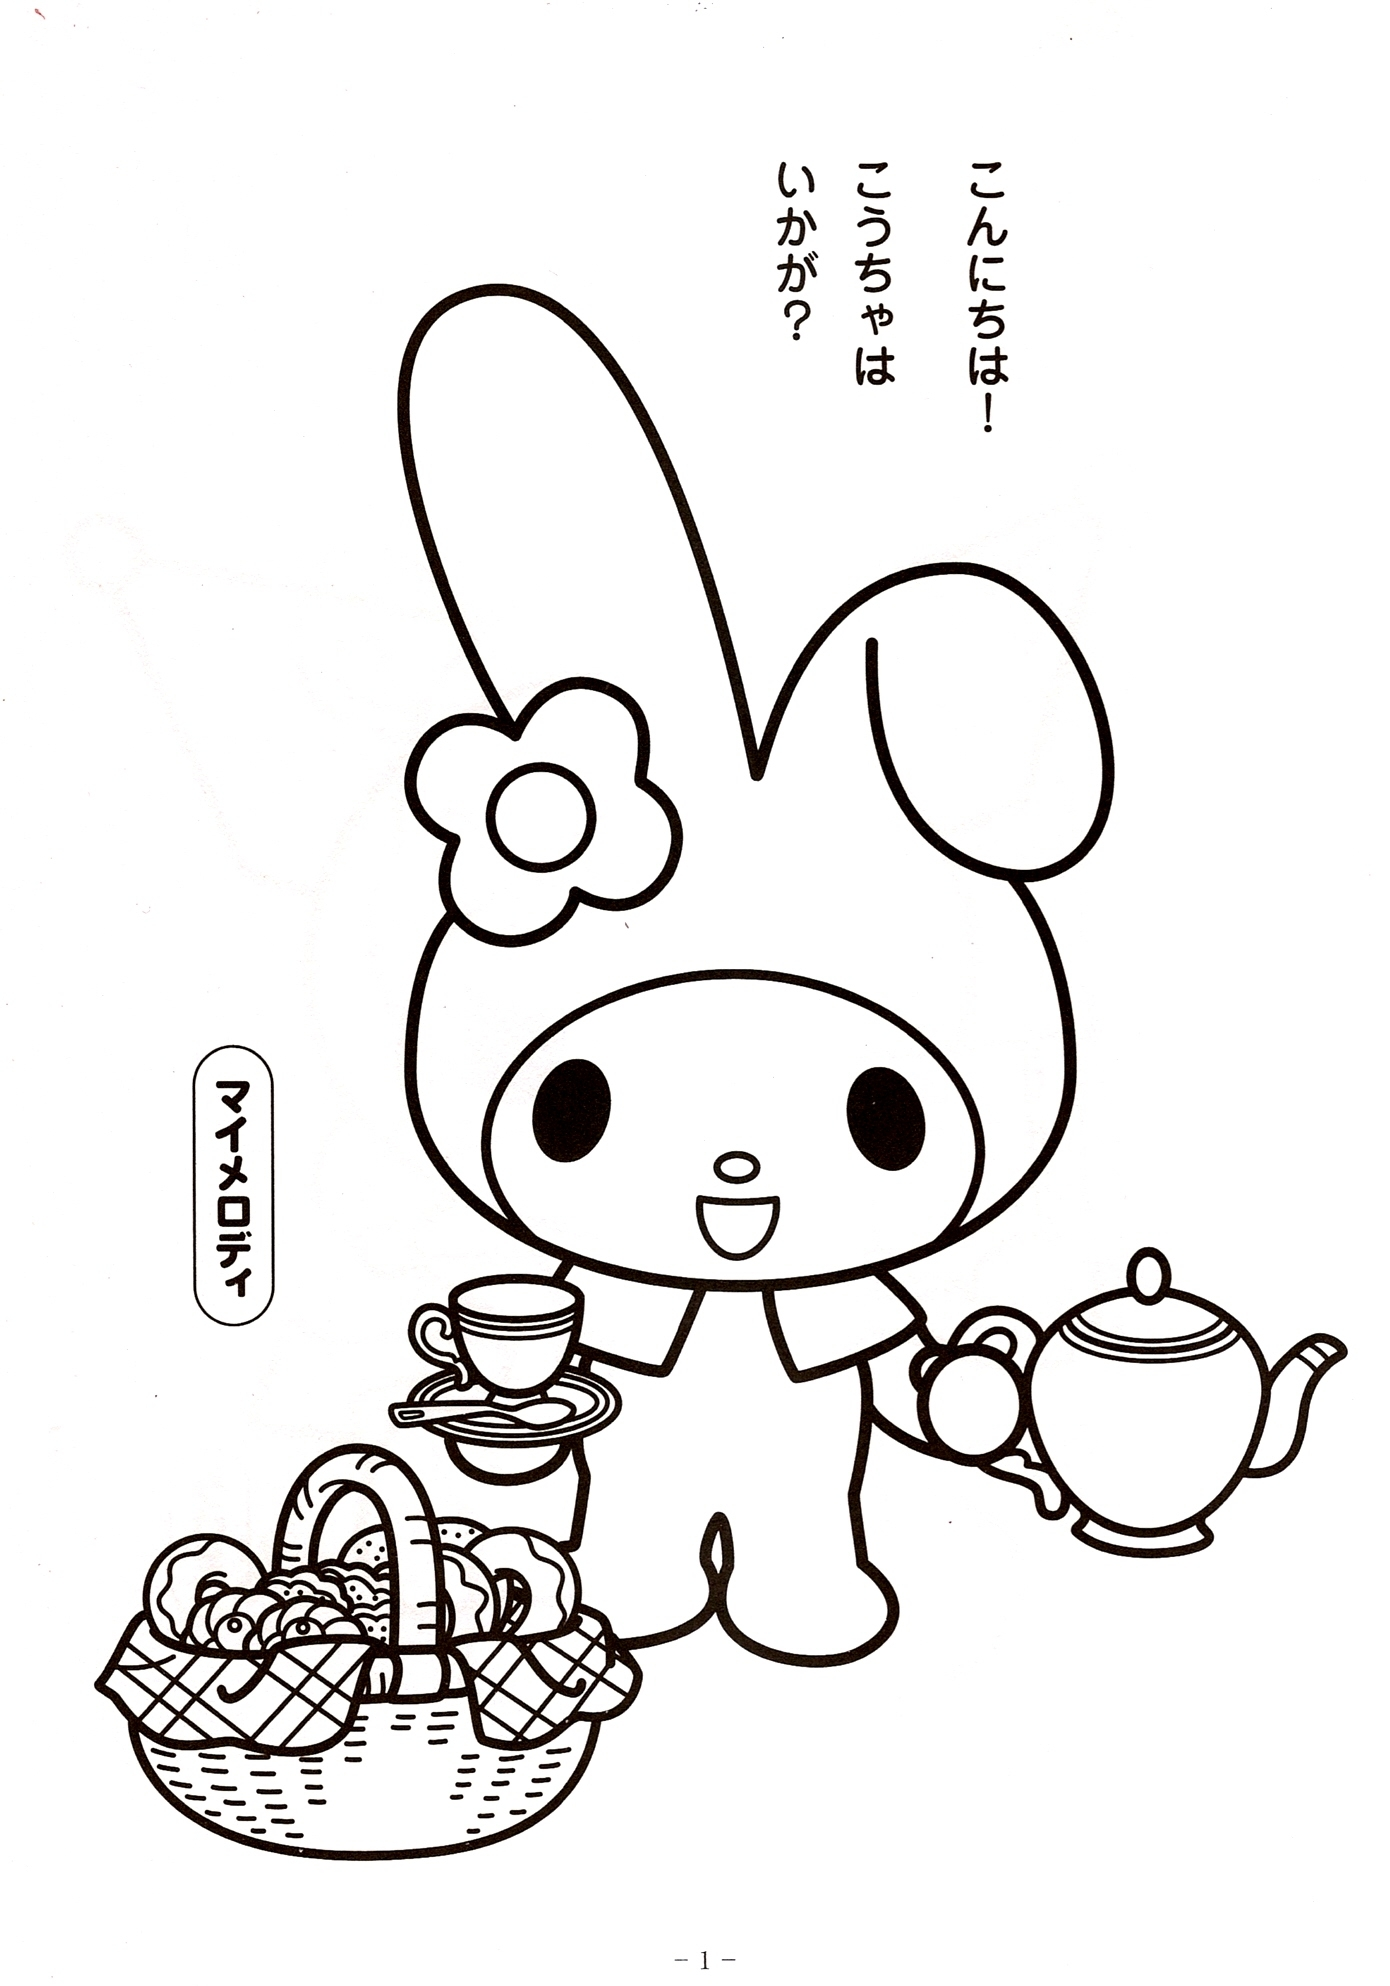 chococat coloring pages - photo#22